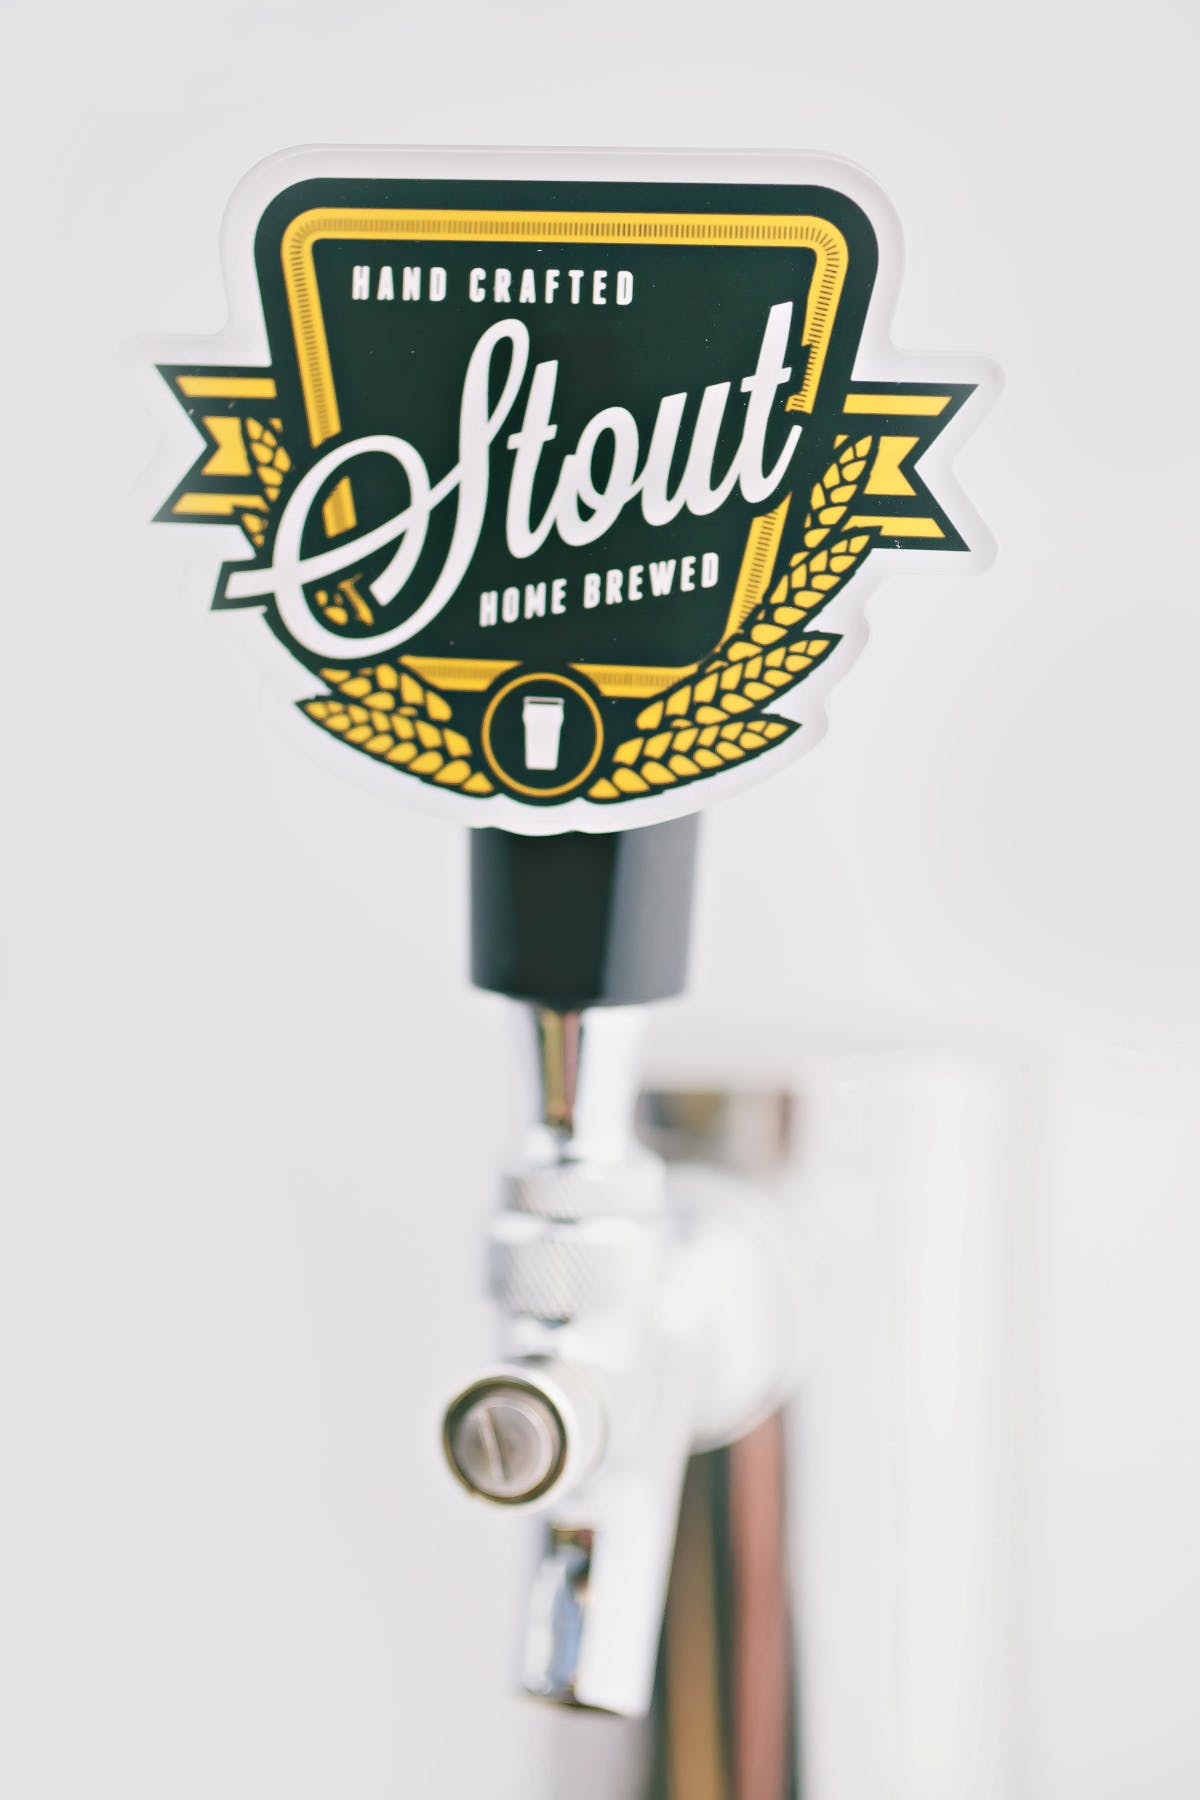 3.25 inch handle Tap handle sold by Switch Taps, LLC